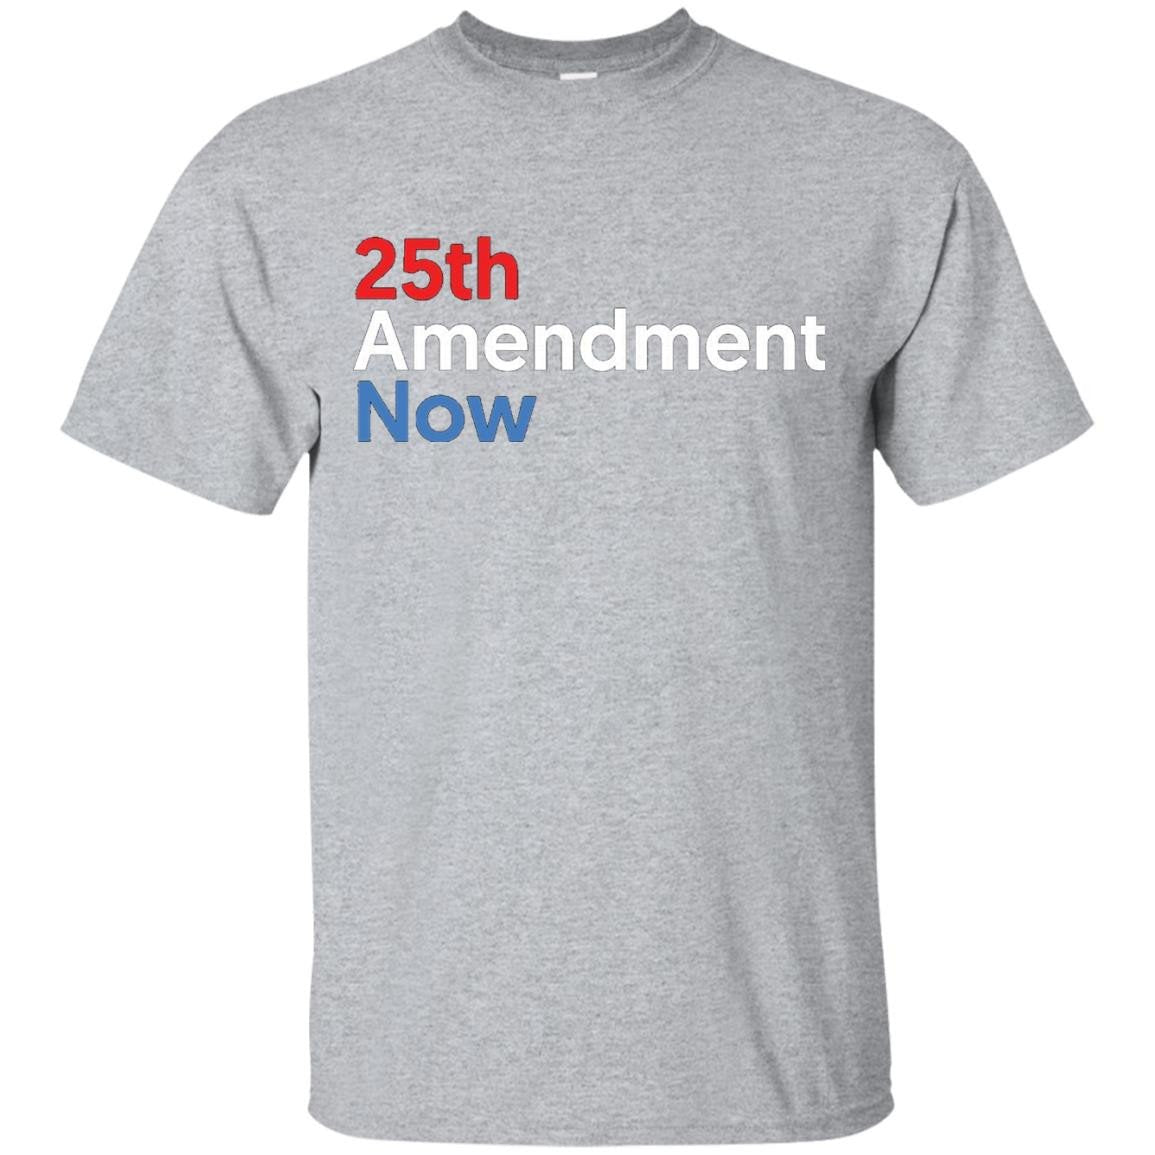 25th Amendment Now T-Shirt